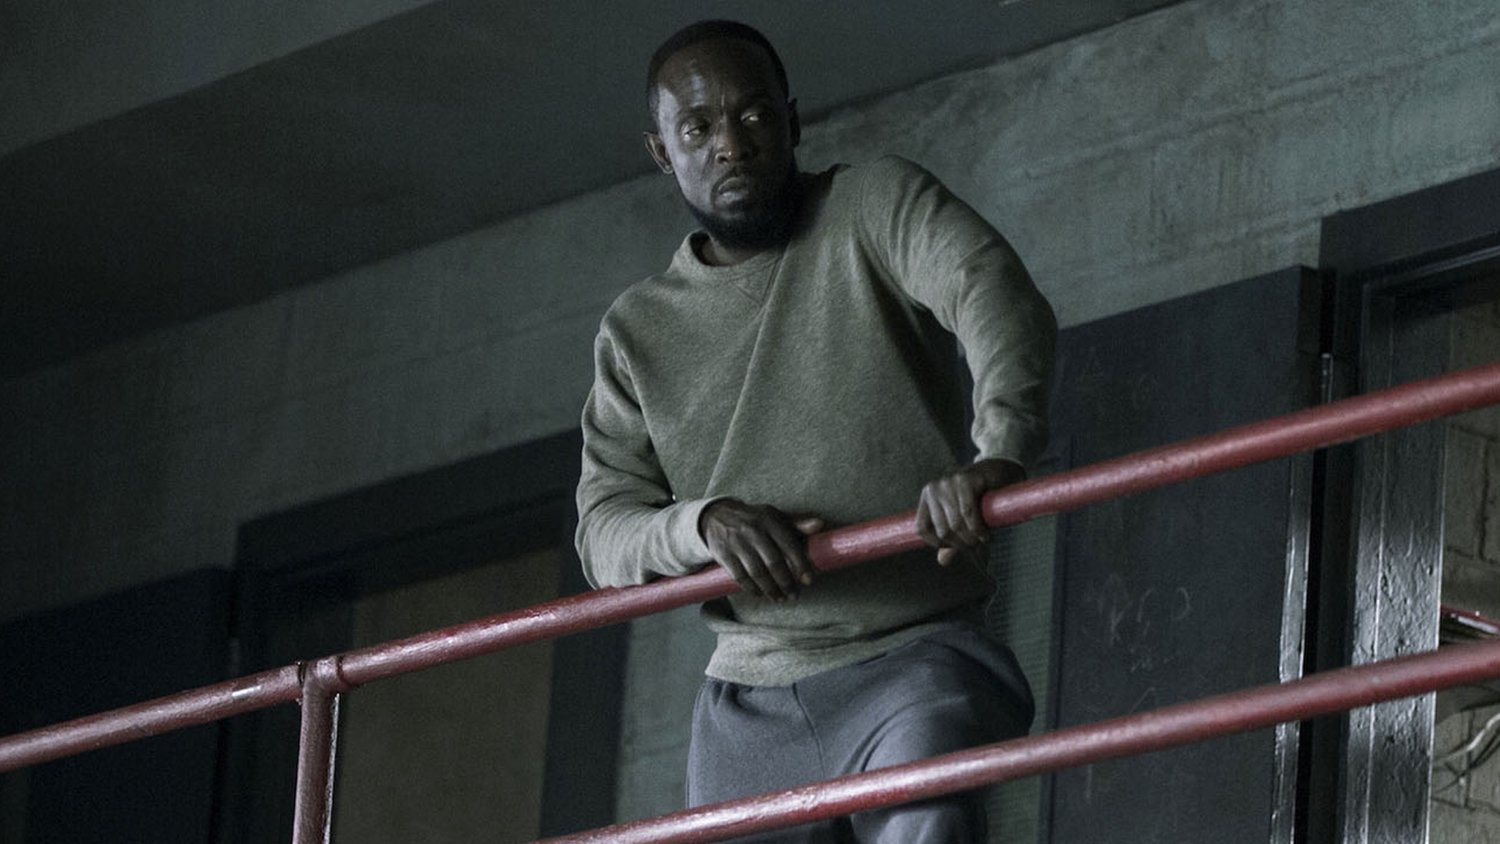 THE WIRE Star Michael K. Williams in Talks to Join Lucasfilm's HAN SOLO Film